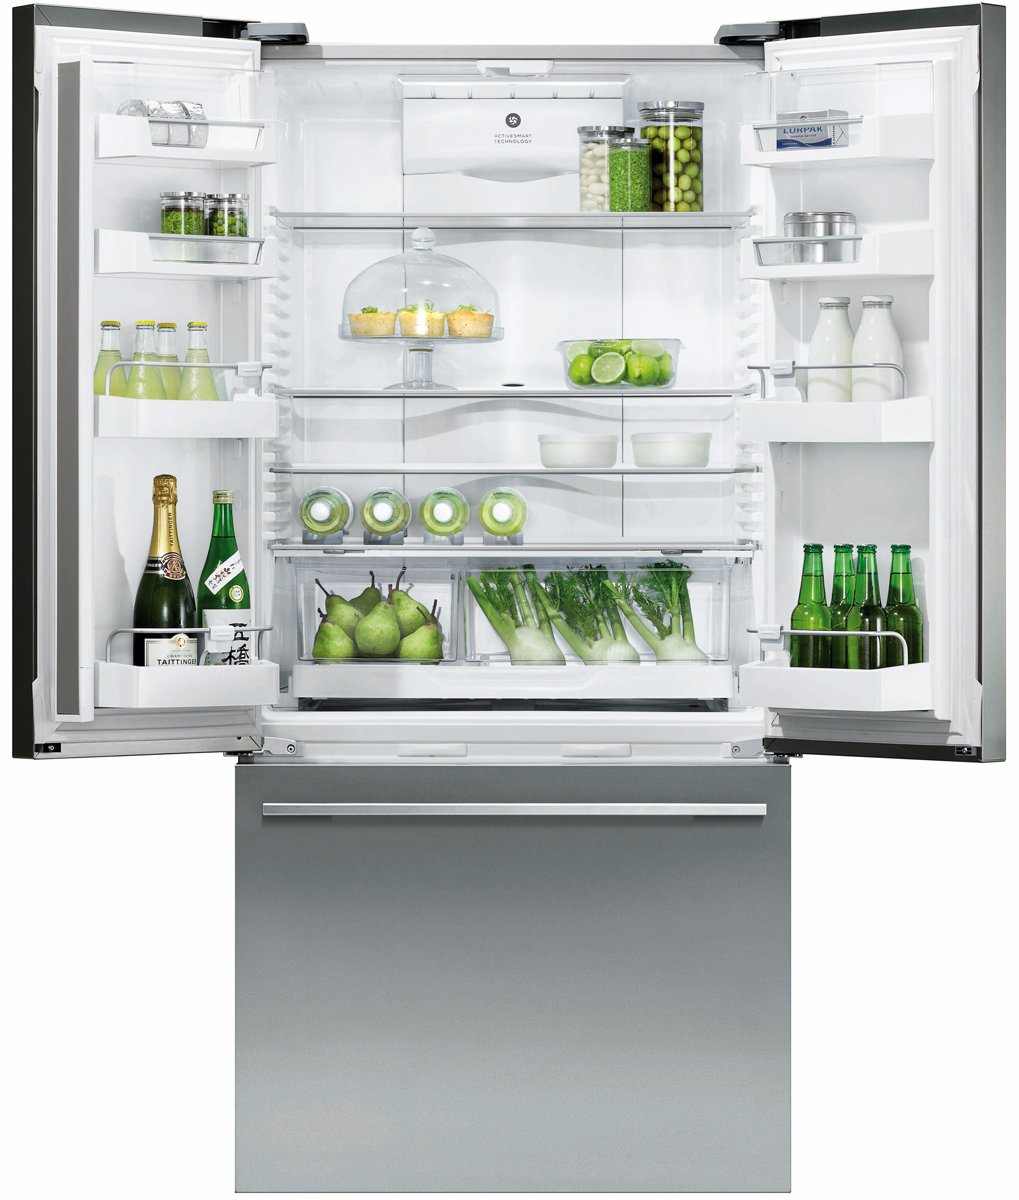 Fisher and paykel french door fridge reviews - Fisher Paykel Rf522adusx5 519l French Door Fridge